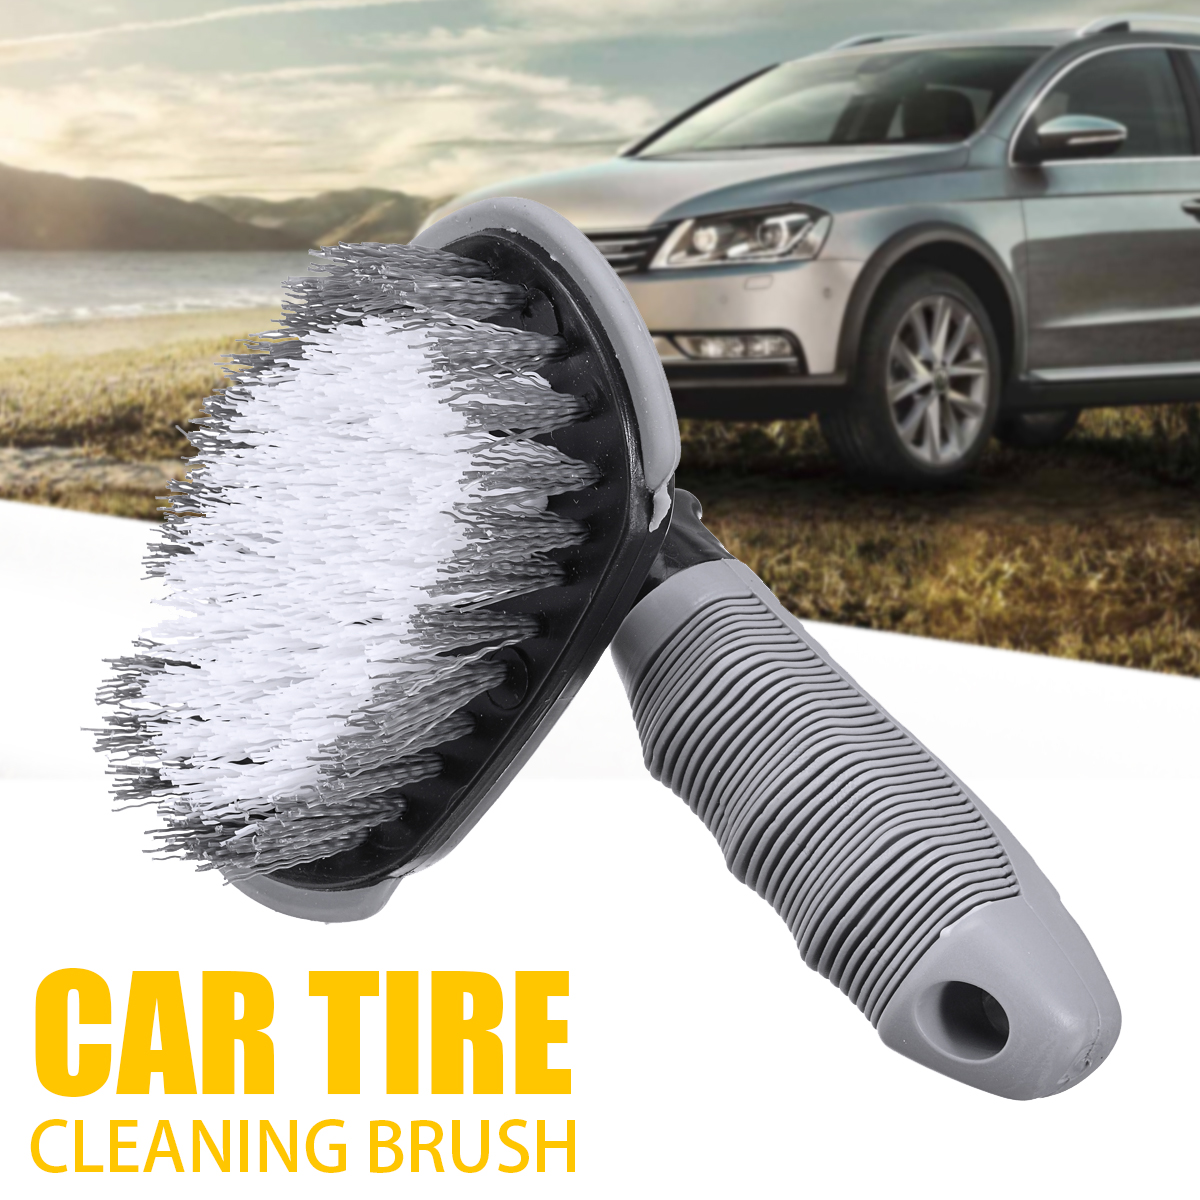 1pcs Car Wheel Tyre Cleaning Brush T Type Tire Rim Brush for Car Washing Cleaning Car Auto Maintenance Care Car Accessories|Sponges  Cloths & Brushes|Automobiles & Motorcycles - title=